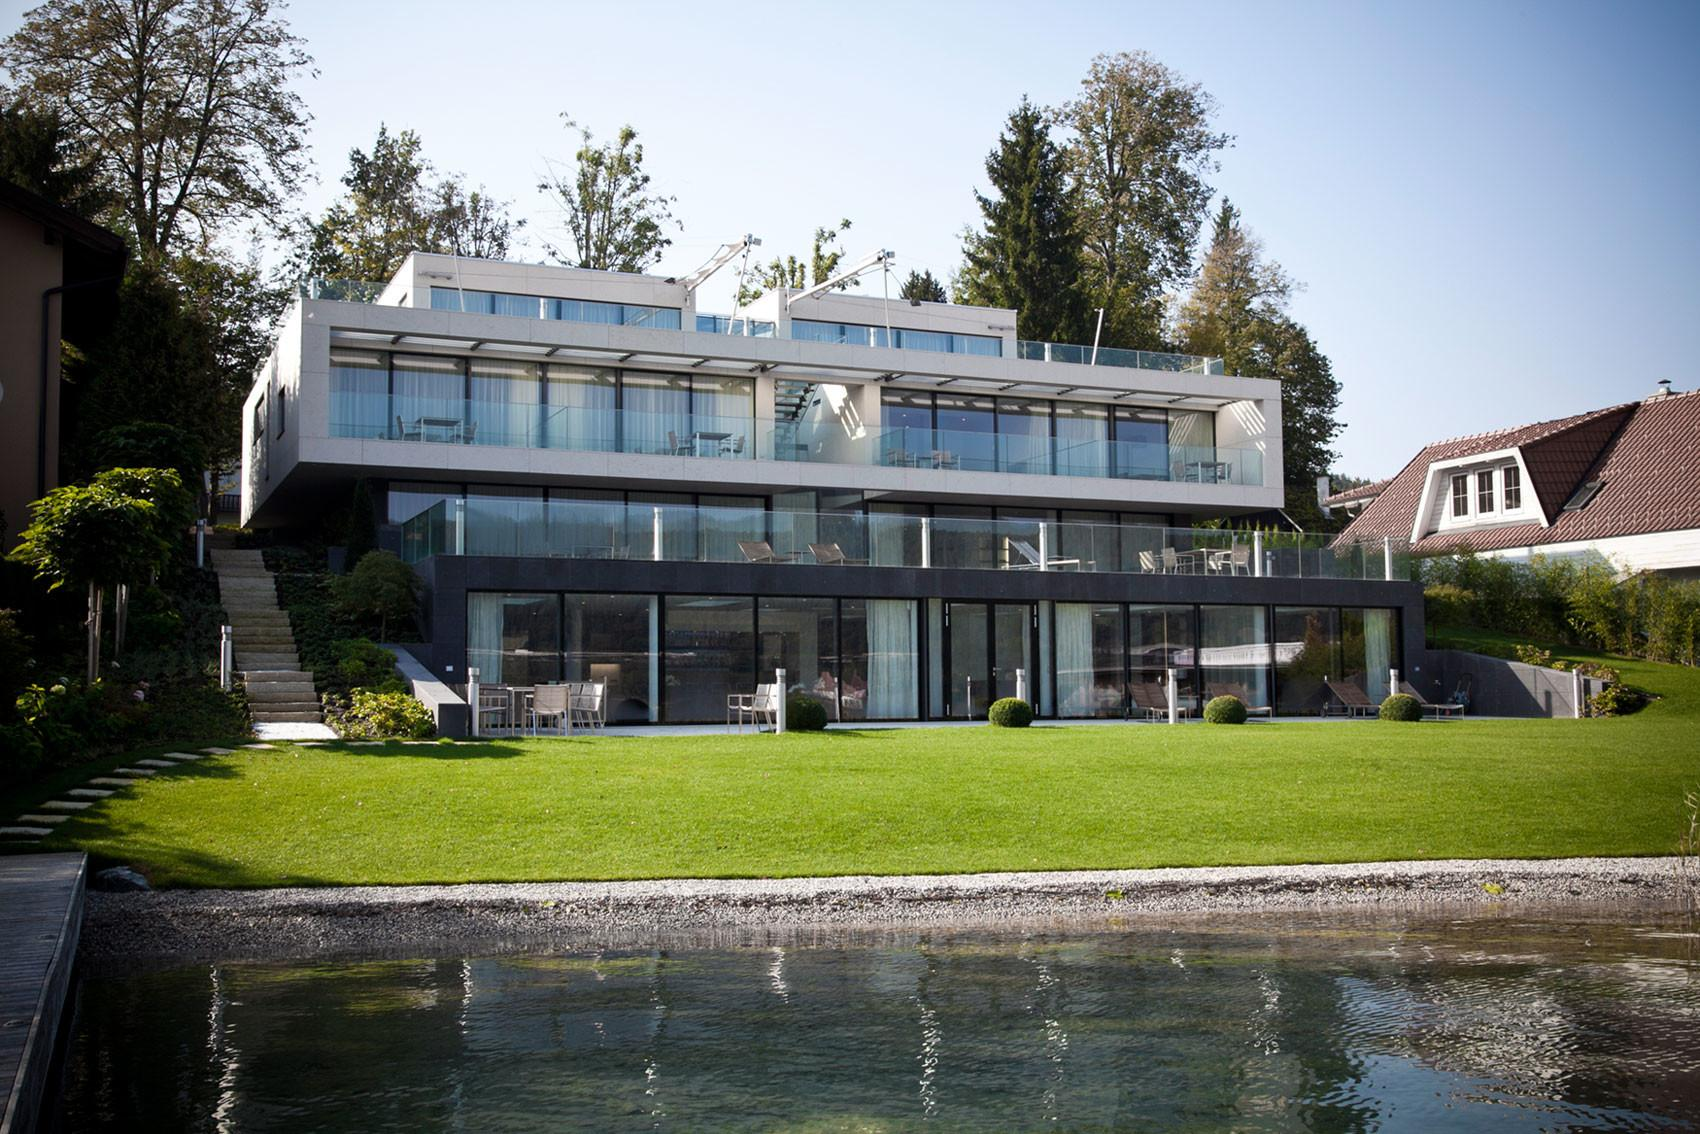 Lakeside Villa Steininger Designers Caandesign